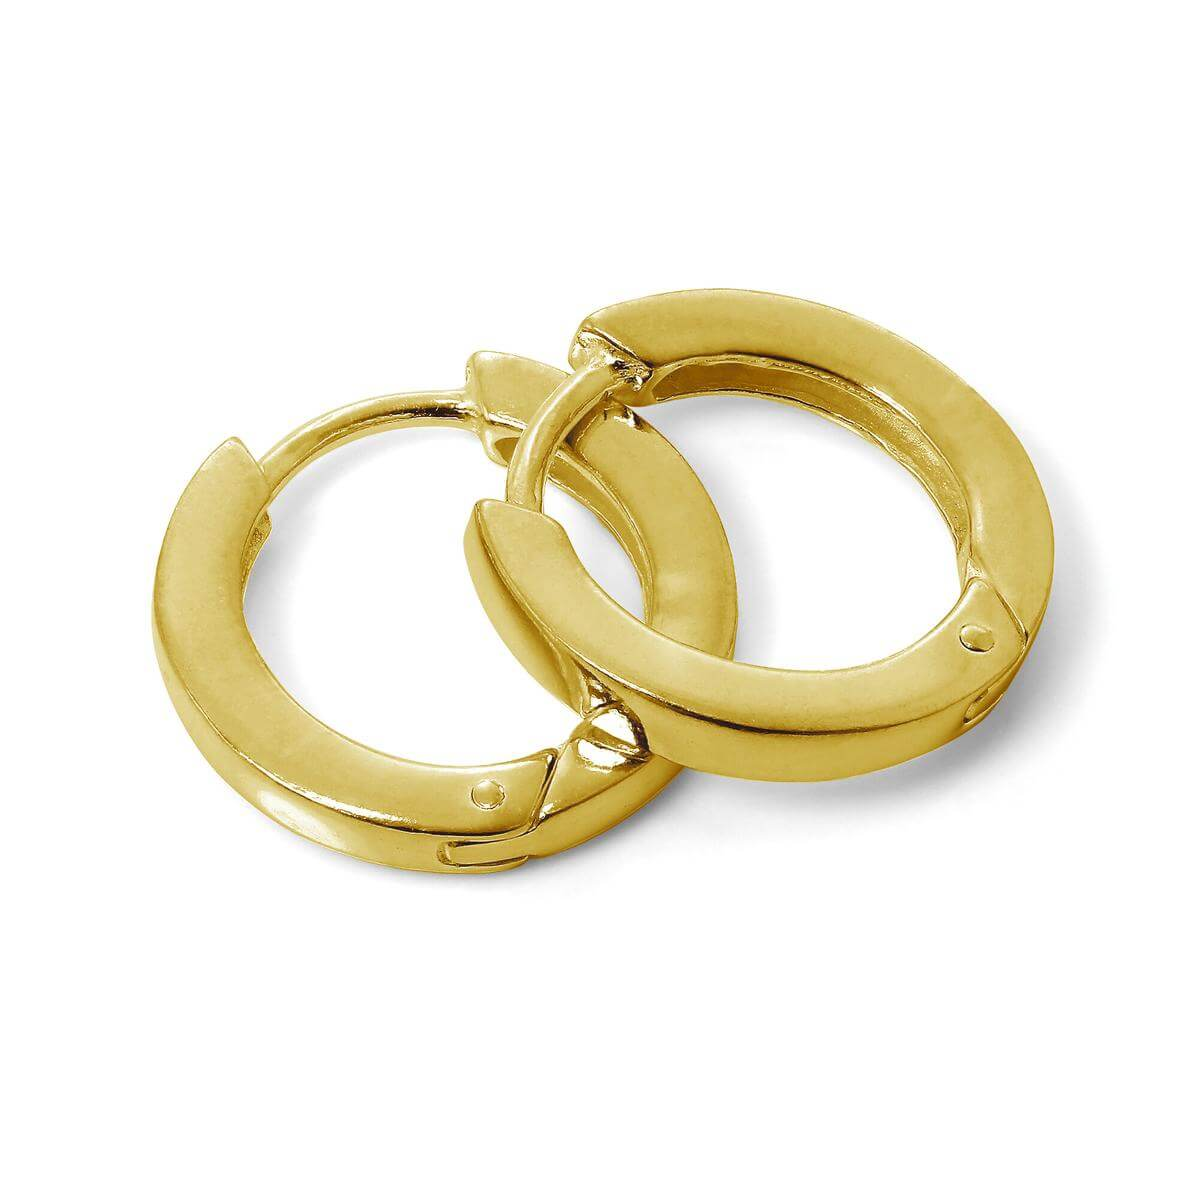 Gold Plated Sterling Silver Hinged 16mm Huggie Hoop Earrings